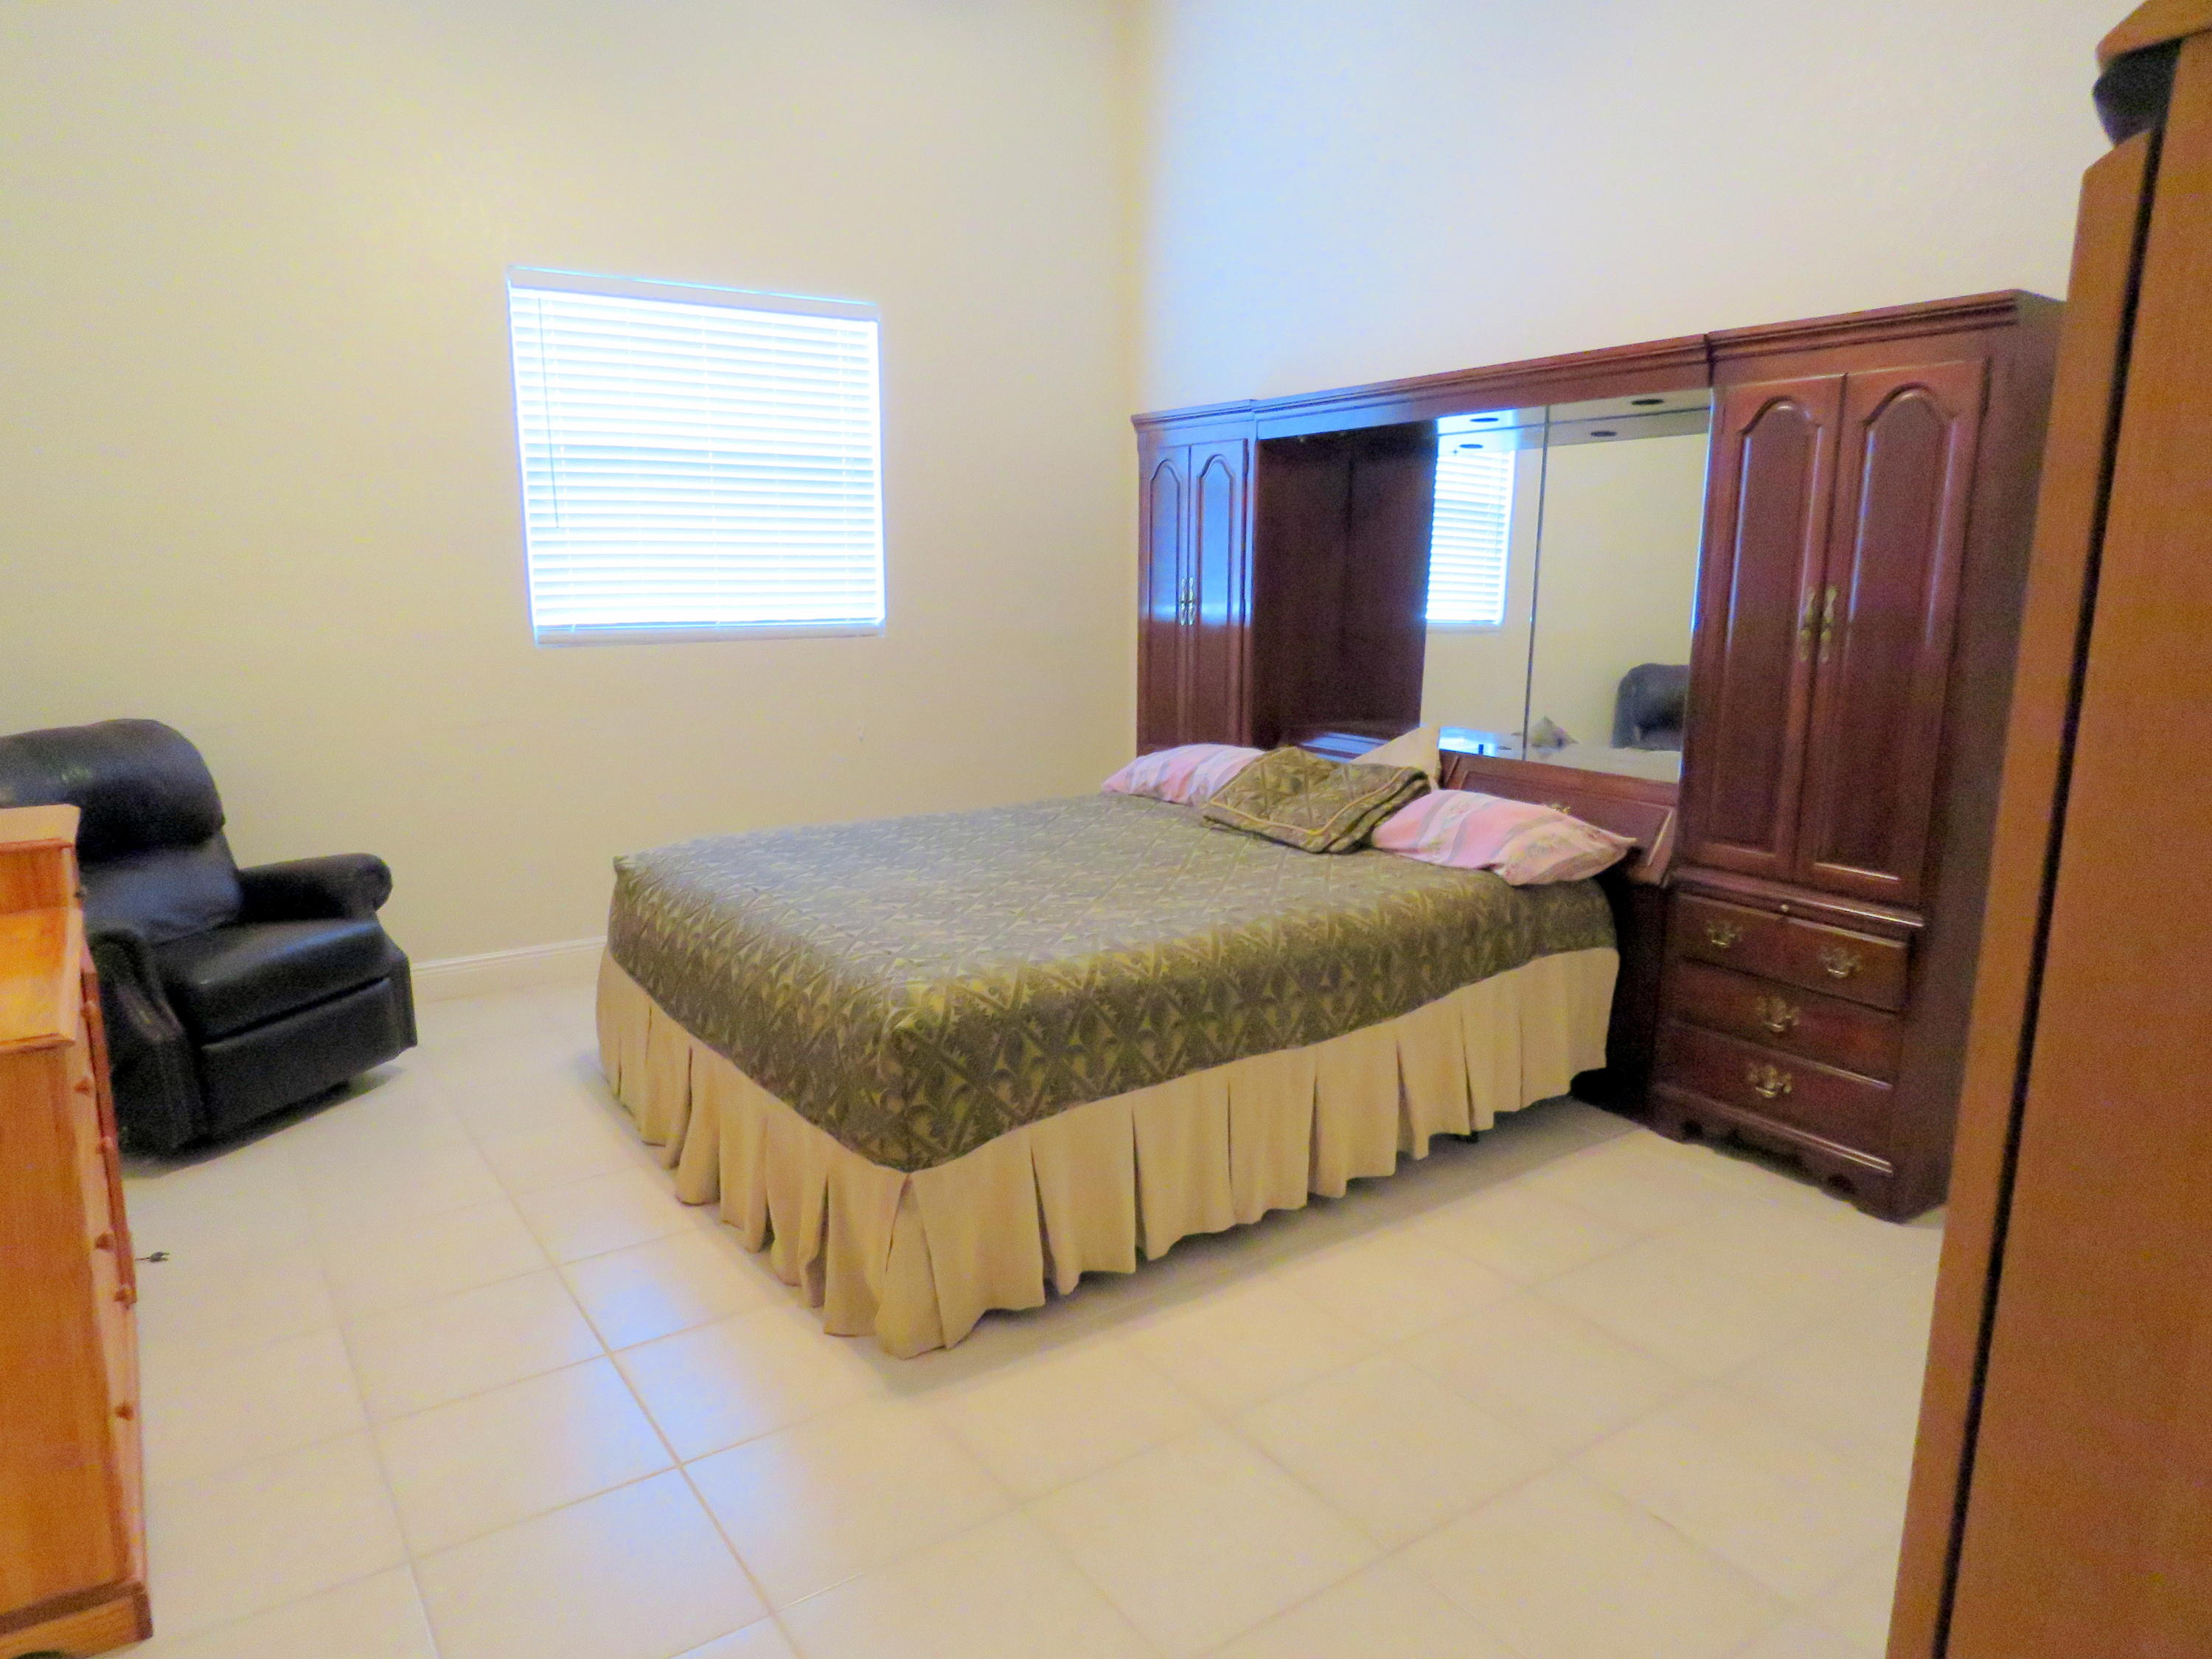 GROOMS QTRS BEDROOM TWO